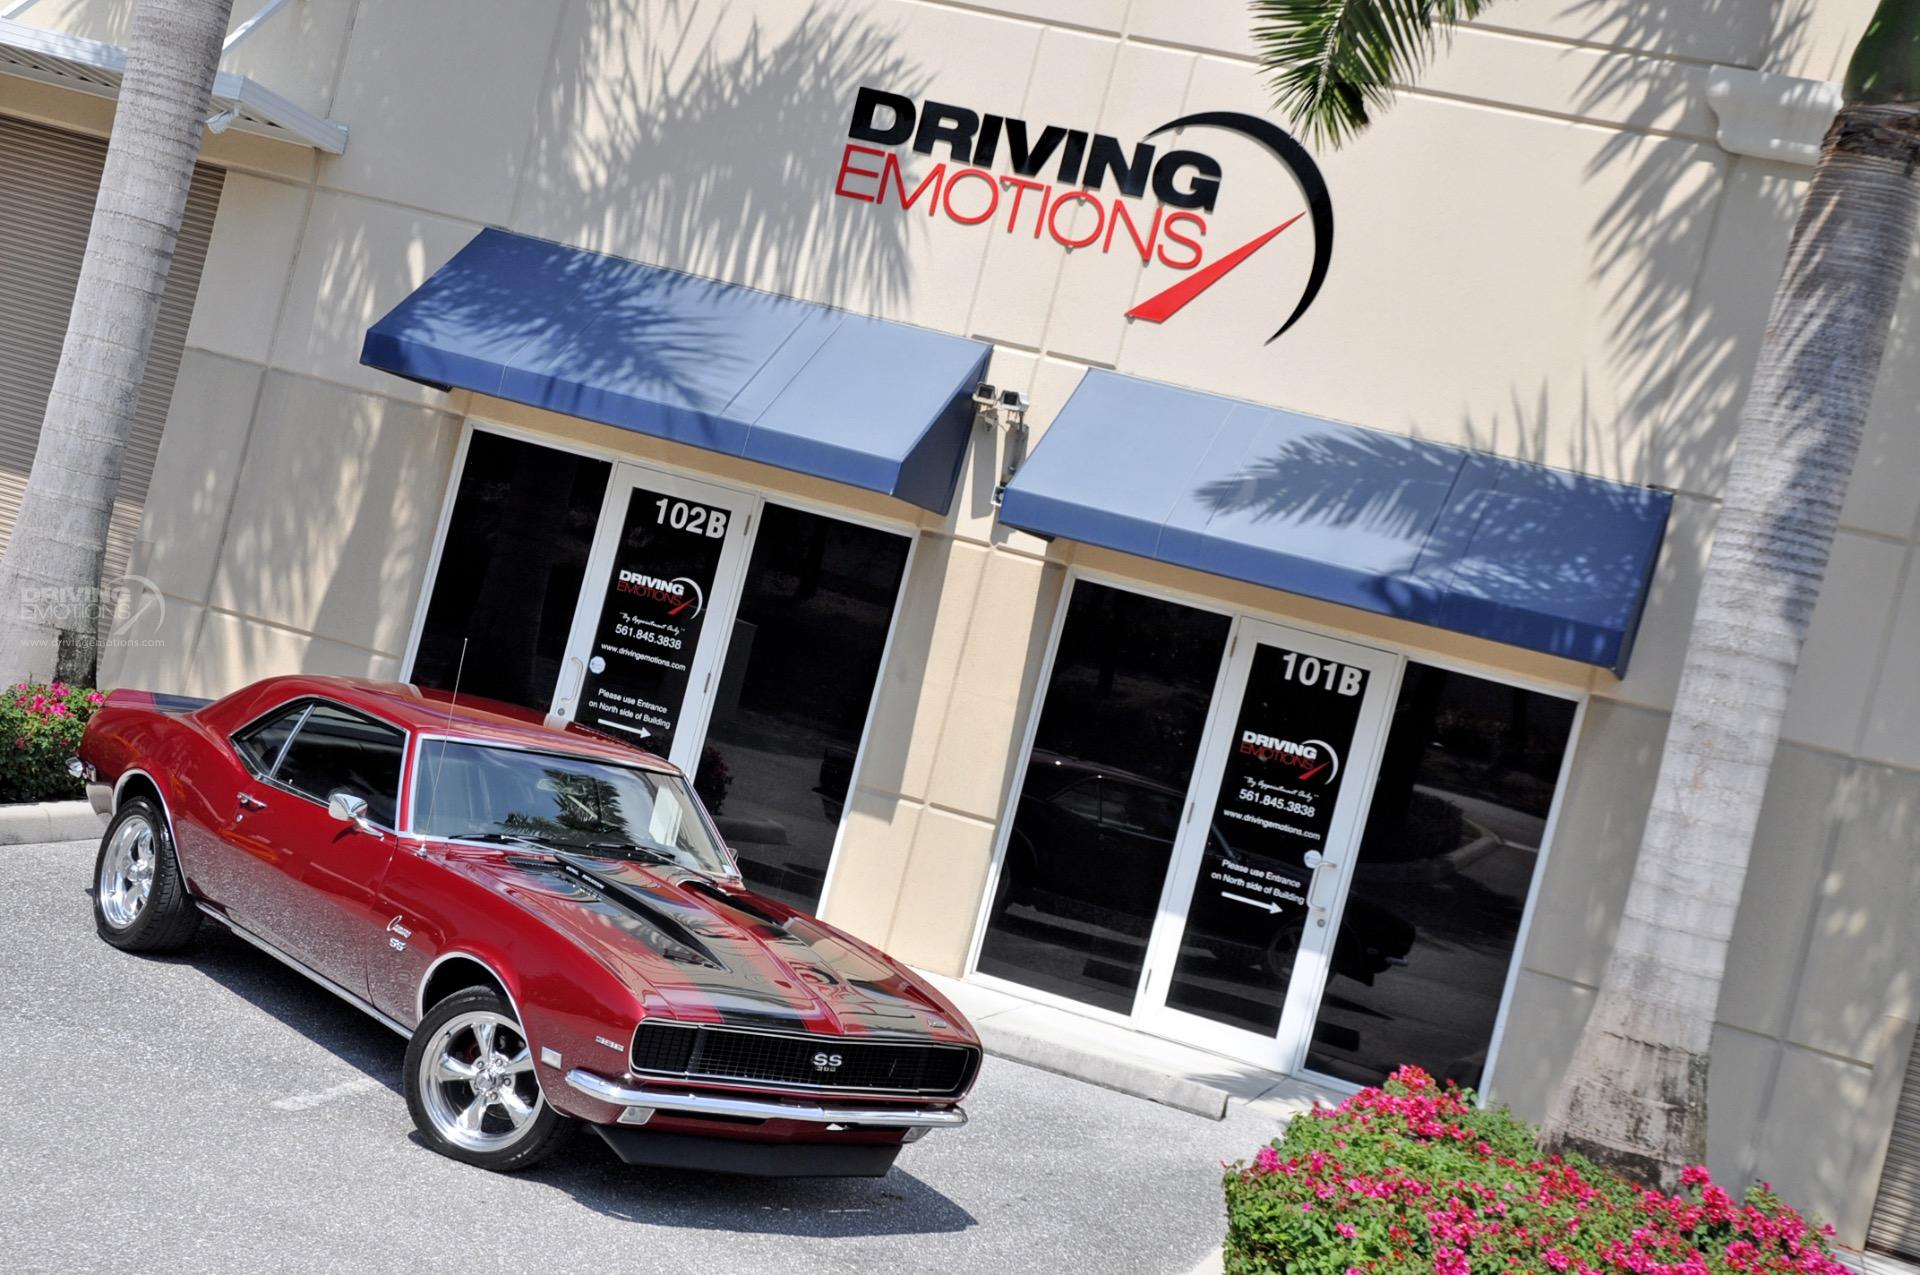 1968 Chevrolet Camaro Ss Ss Stock 5879 For Sale Near Lake Park Fl Fl Chevrolet Dealer